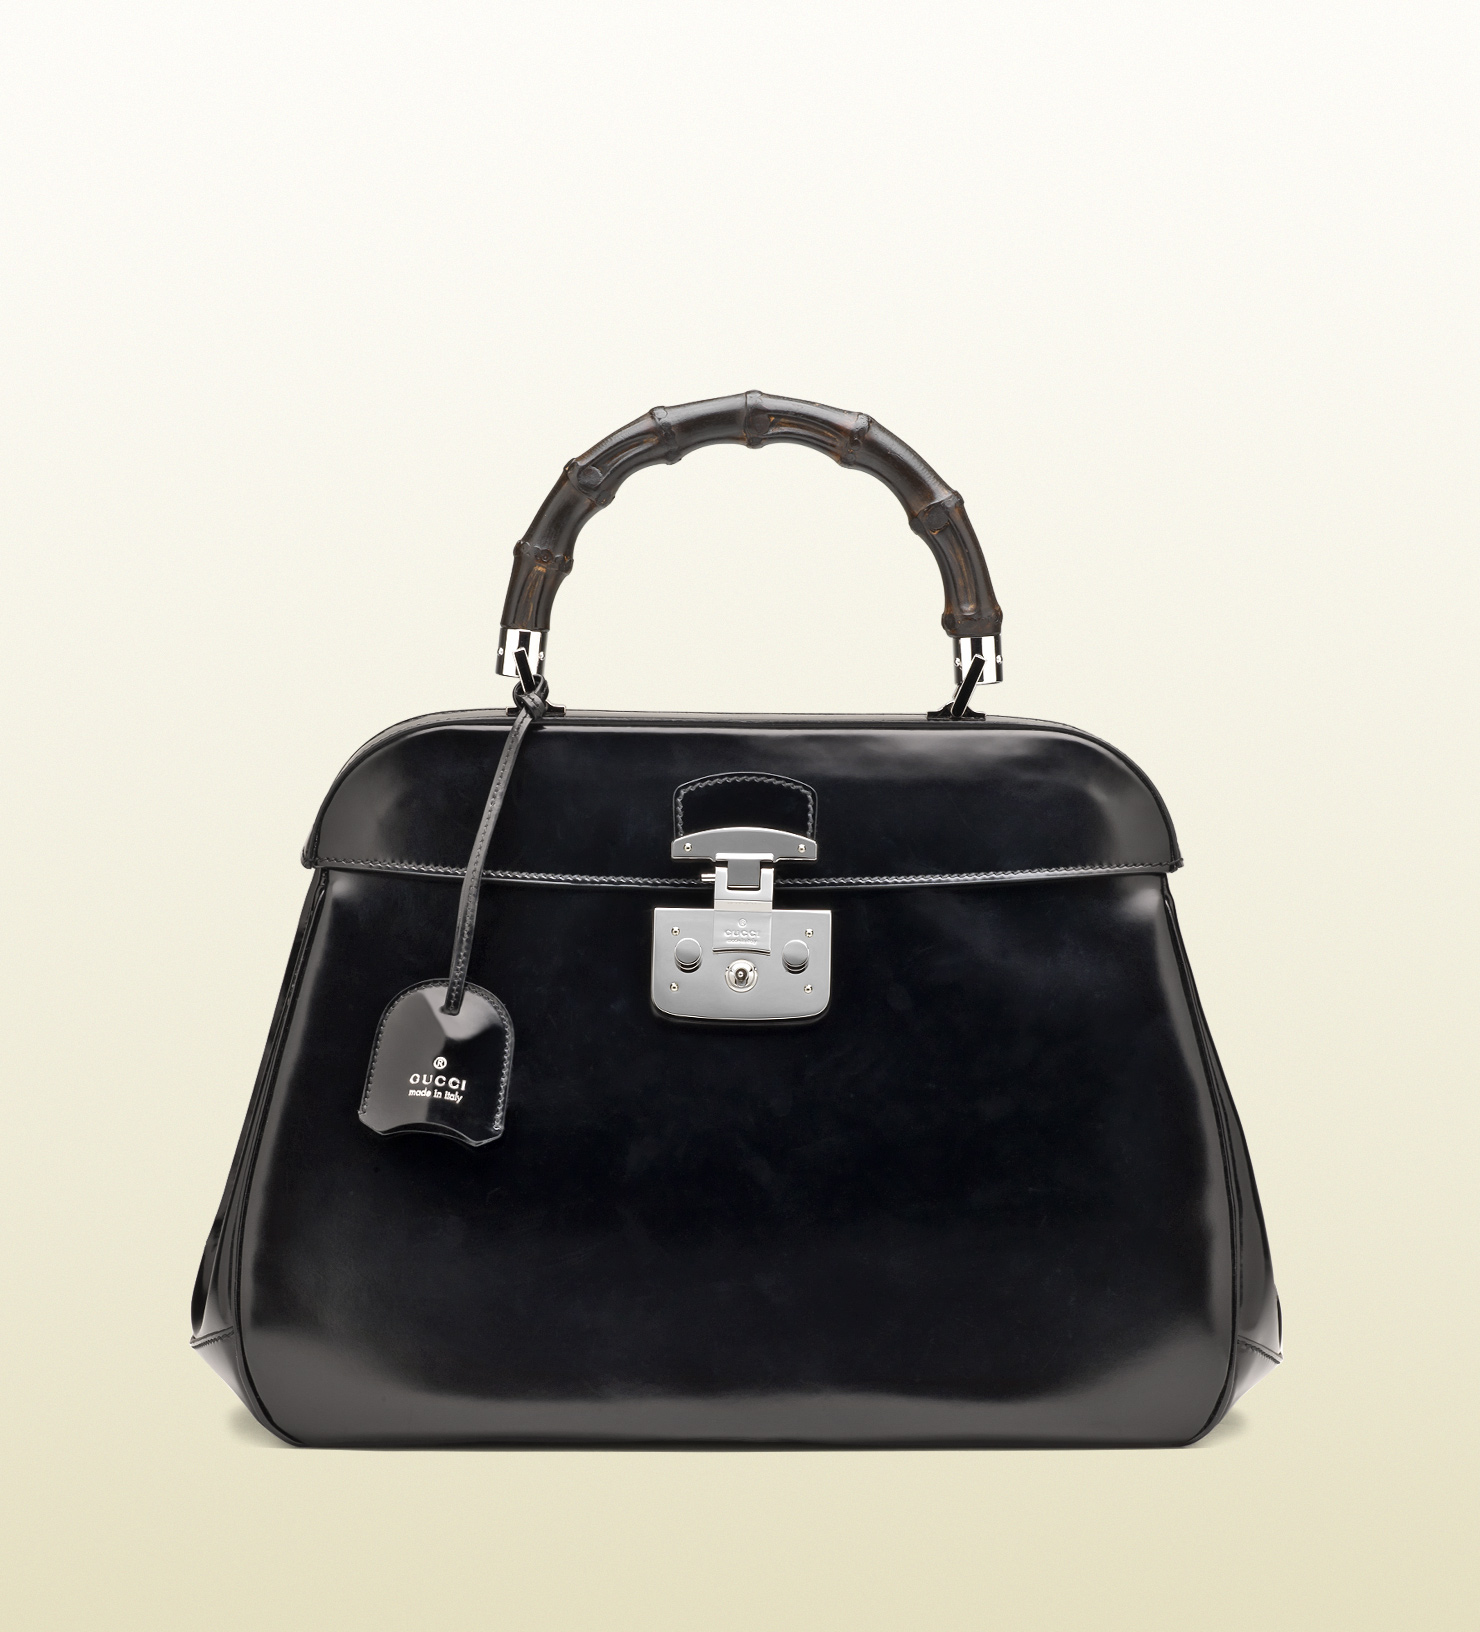 Gucci - lady lock leather top handle bag 331829CLG0F1000